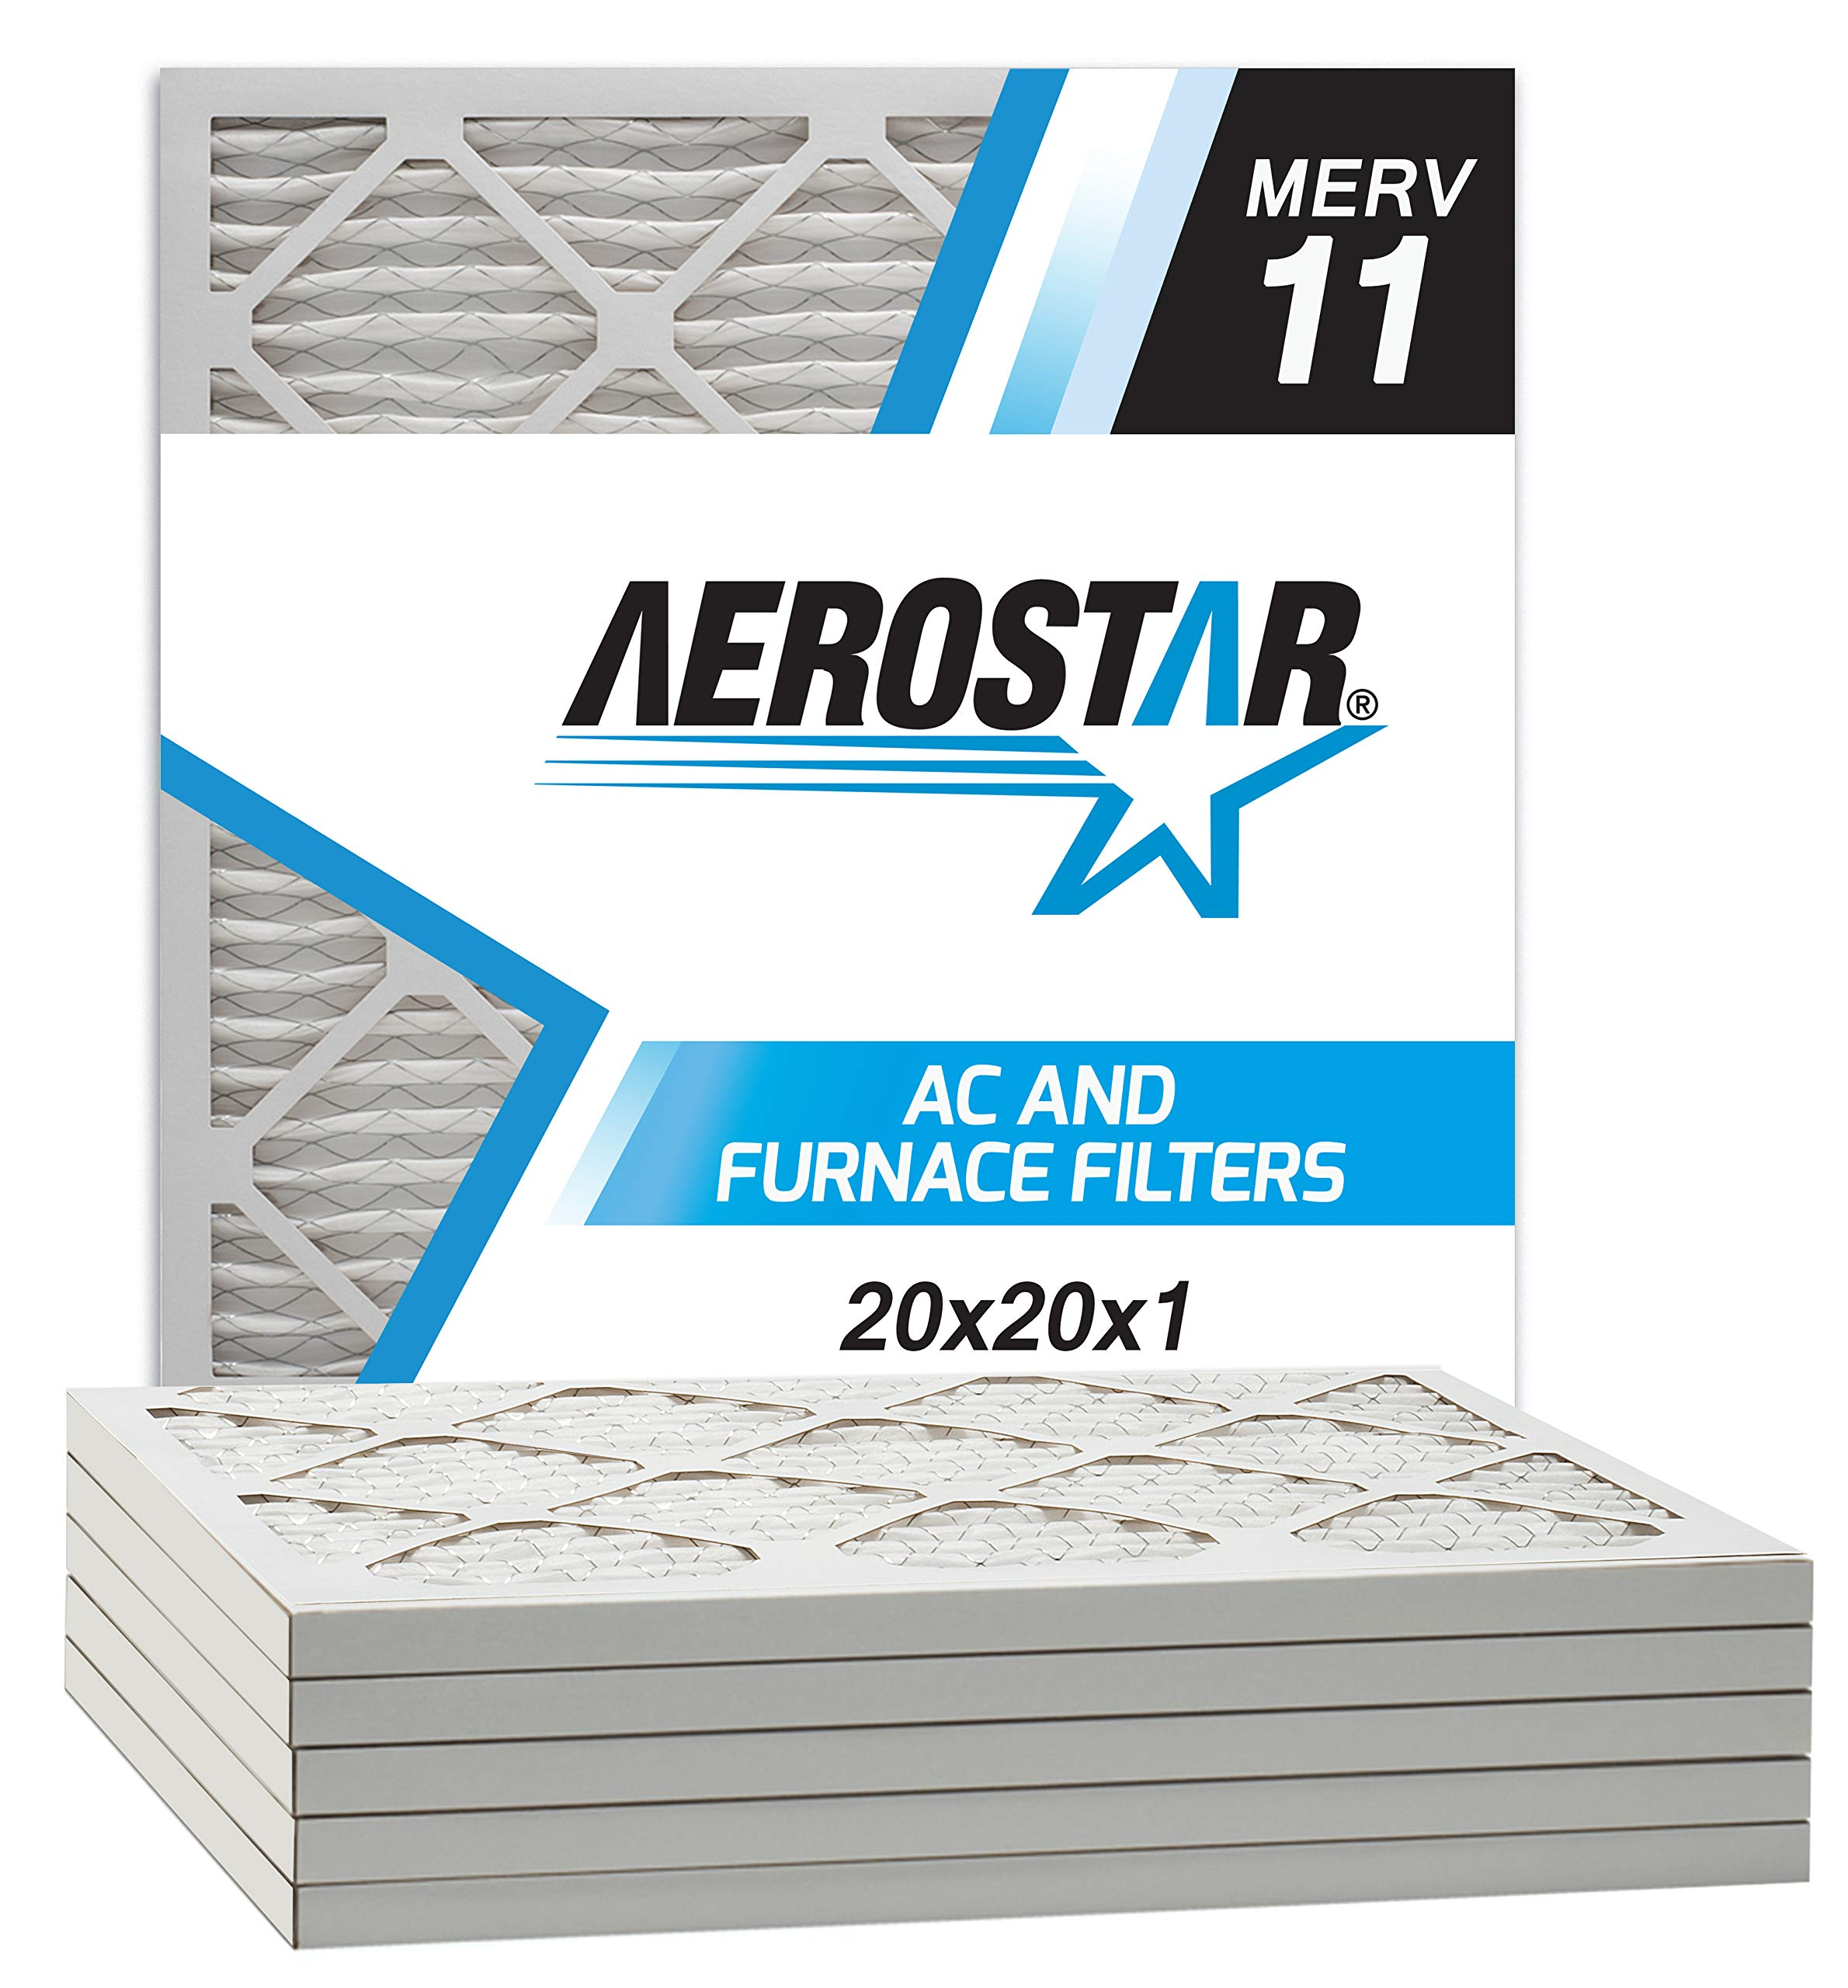 Aerostar 20x20x1 MERV 11 Pleated Air Filter, Made in the USA, 6-Pack by Aerostar